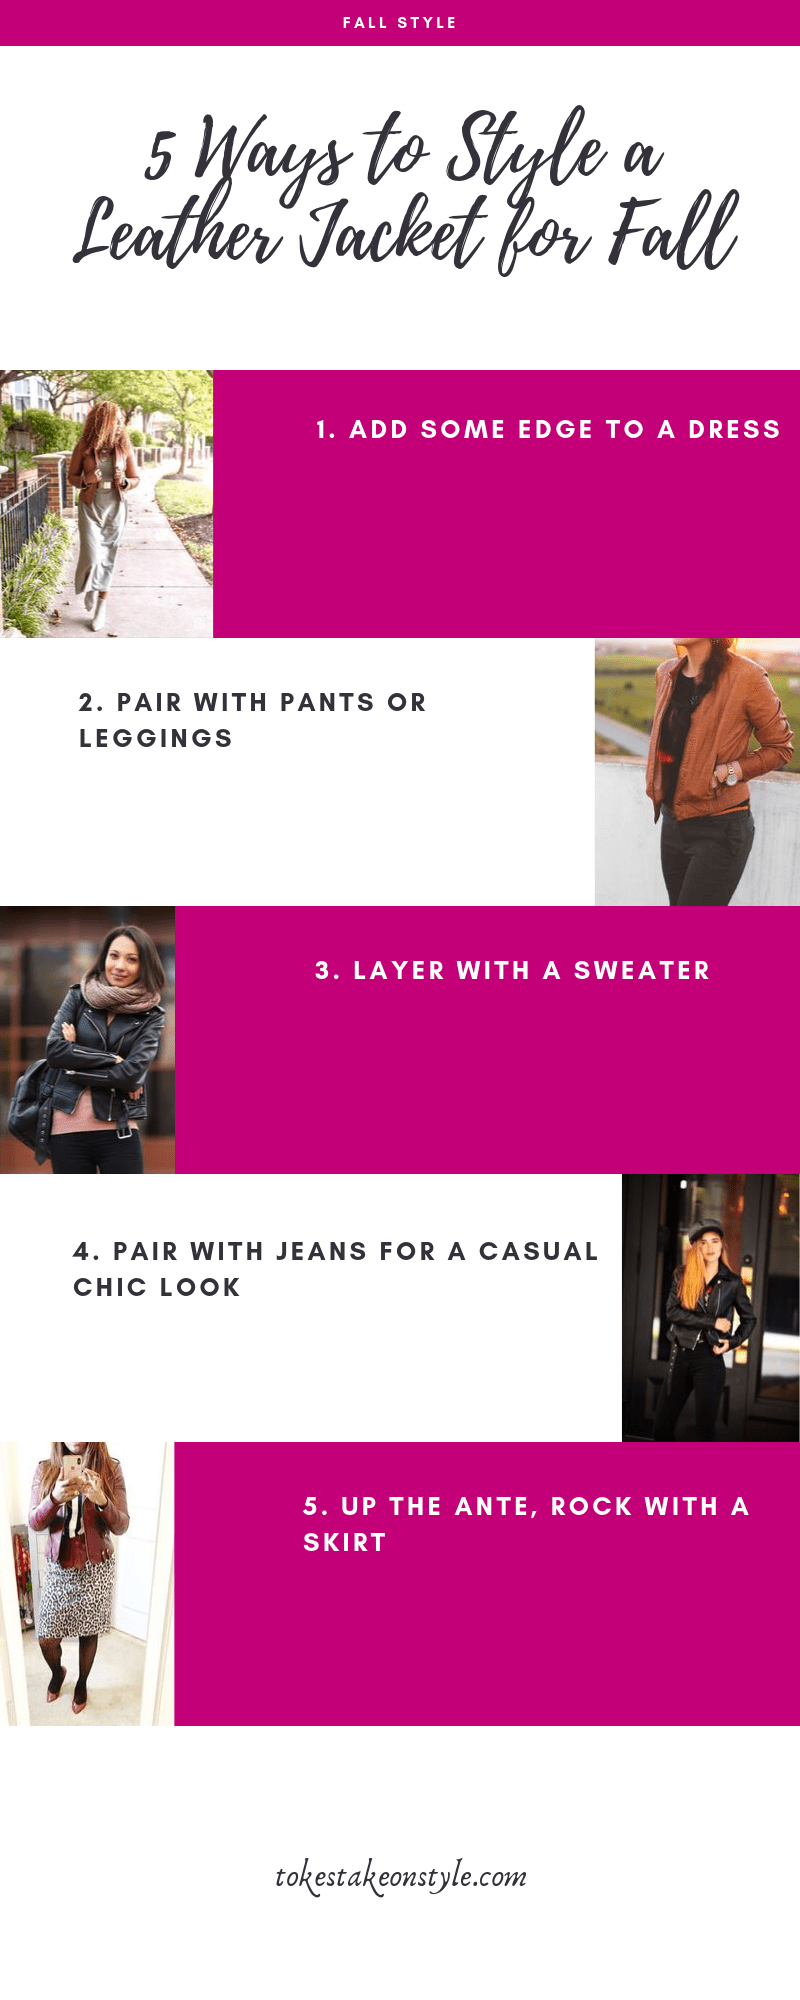 tokestakeonstyle-5-ways-to-style-a-leather-jacket